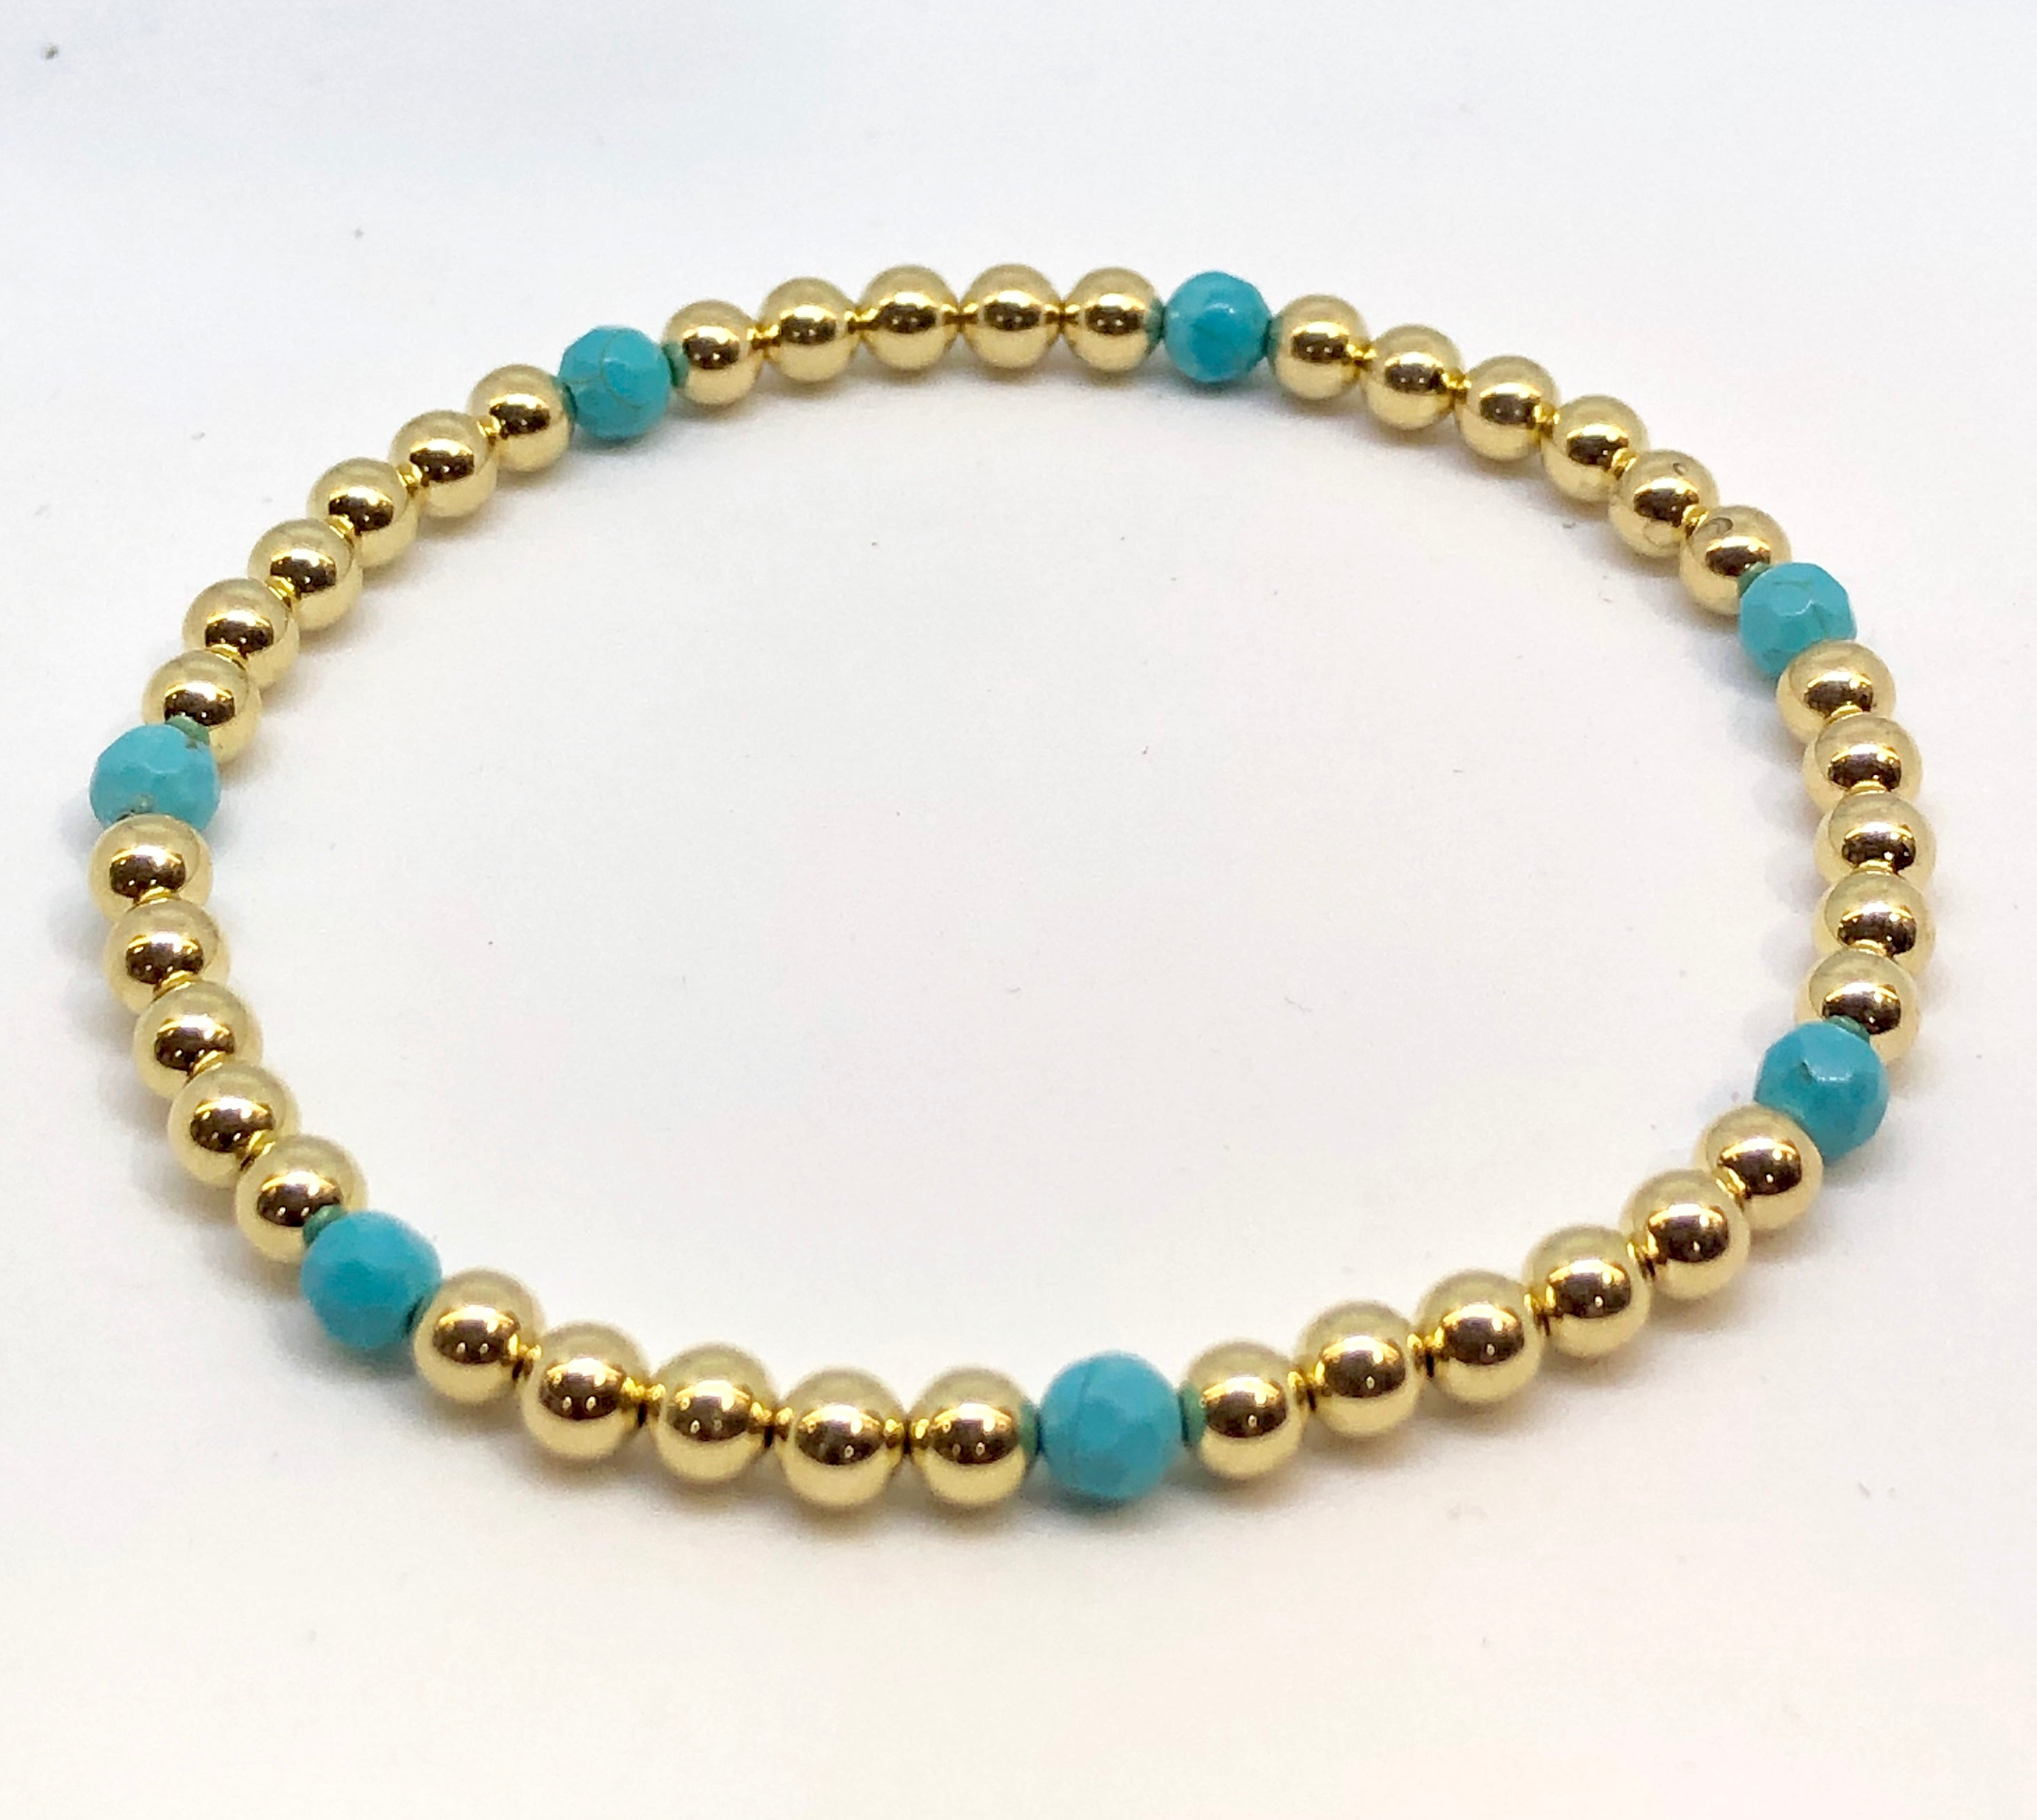 4mm 14kt Gold Filled Bead Bracelet with 7 4mm Turquoise Beads